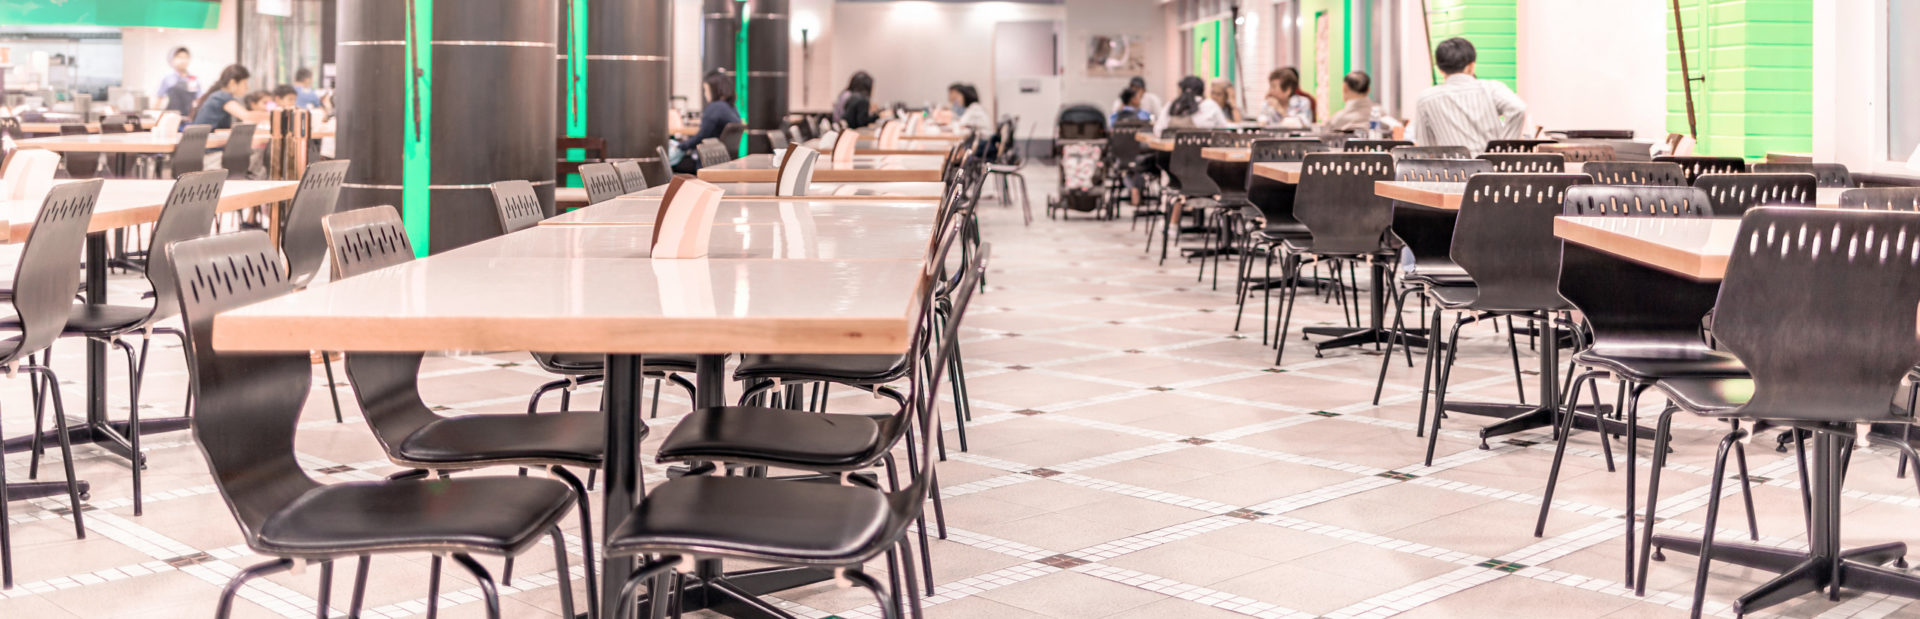 food service and catering solutions 公司配餐 餐饮服务